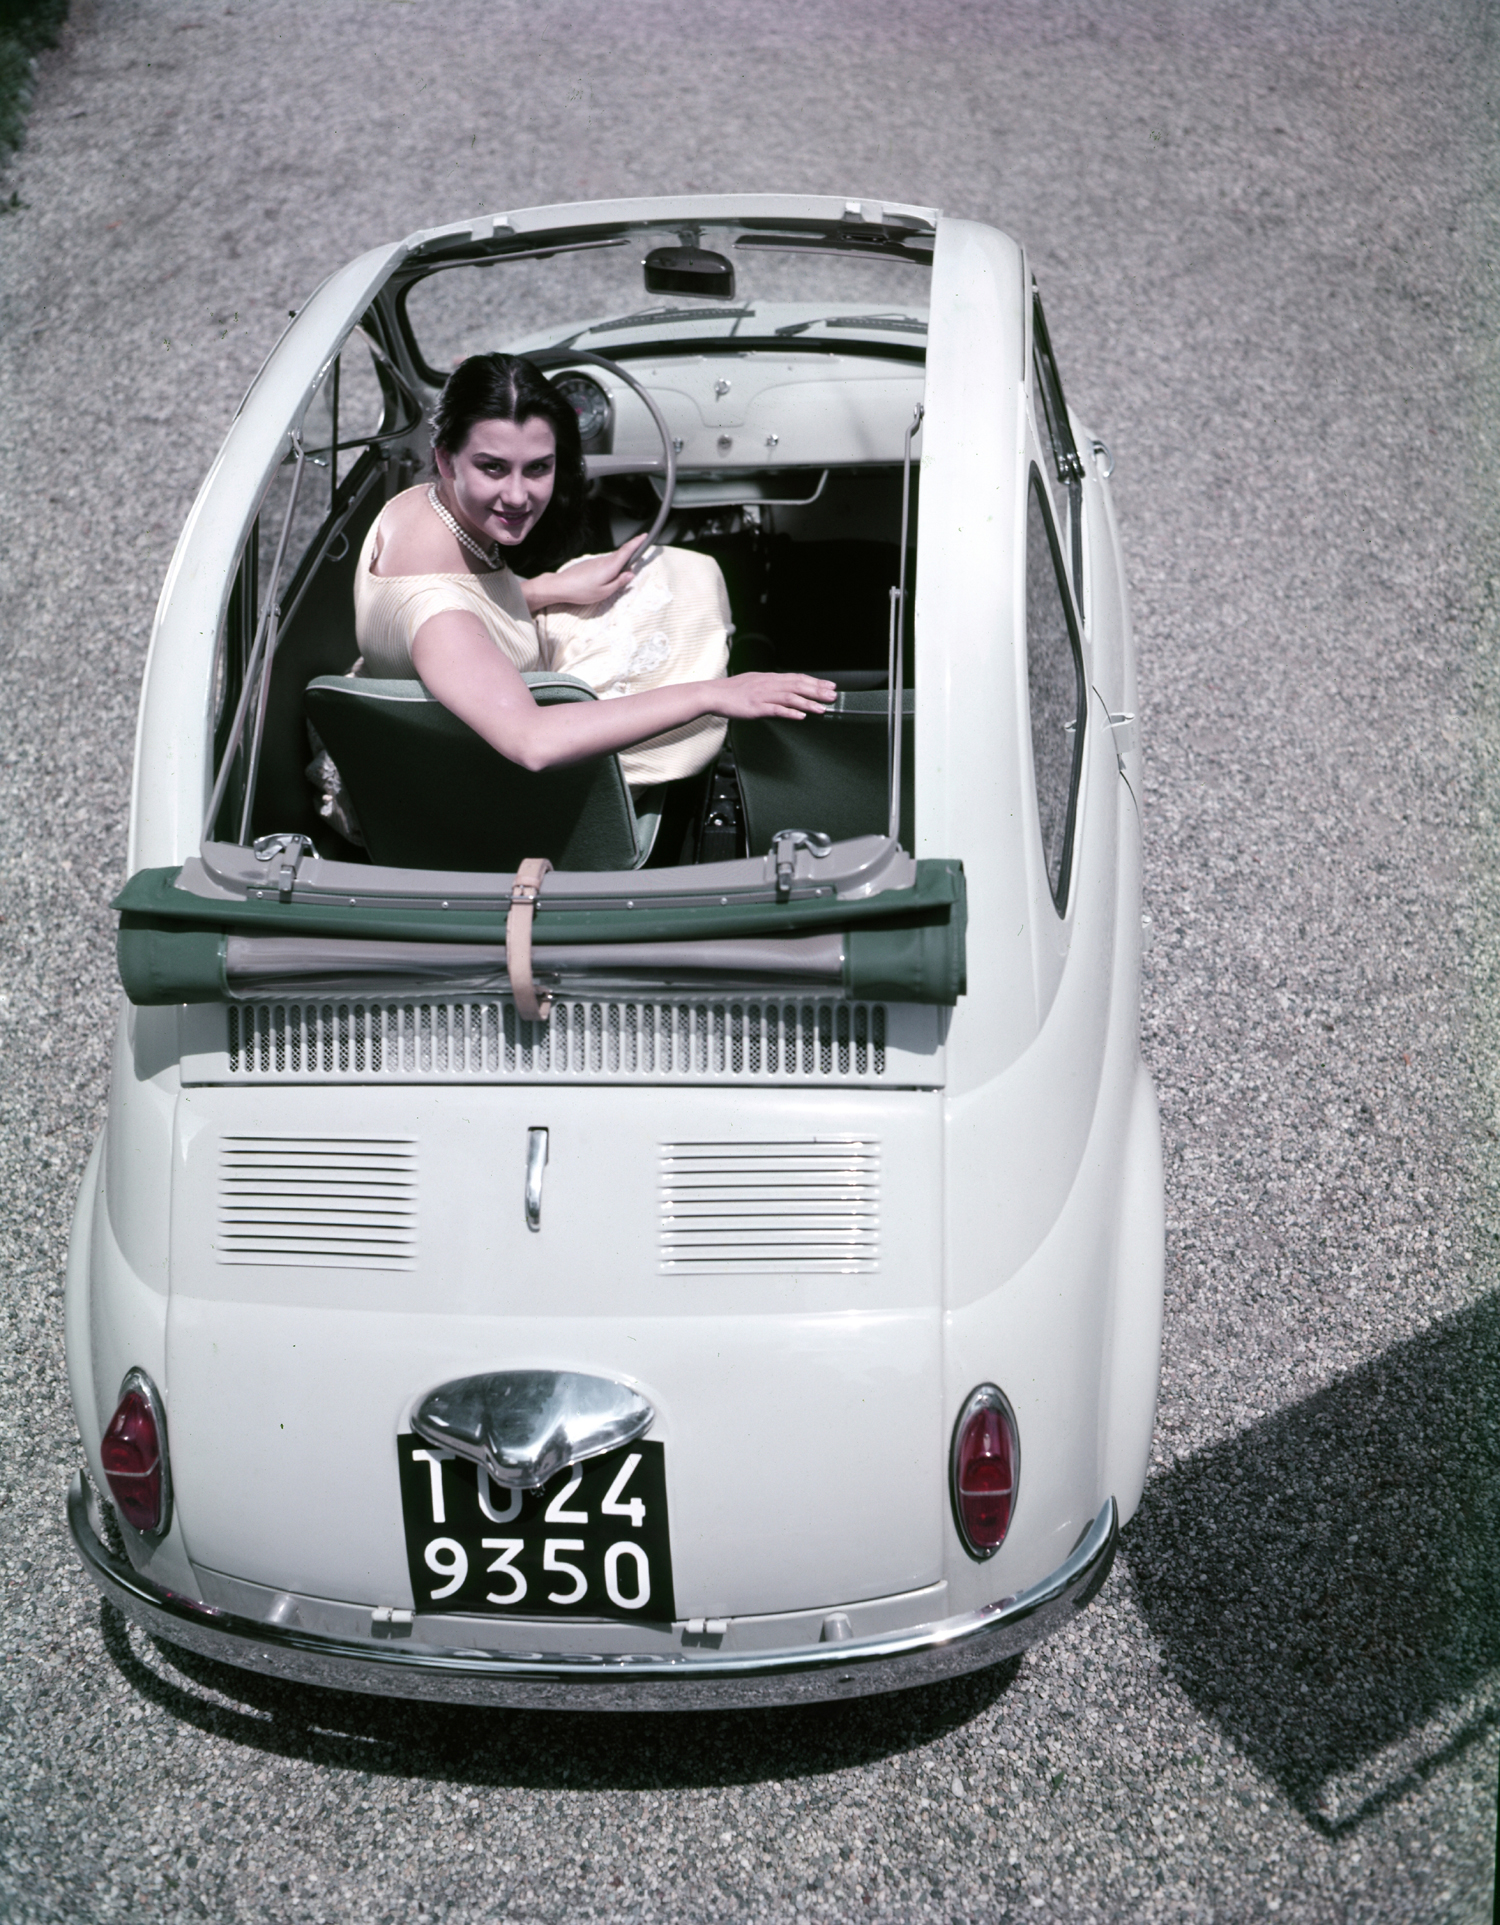 new 2014 fiat 500 1957 edition highlights 57 years of the legendary icon. Black Bedroom Furniture Sets. Home Design Ideas